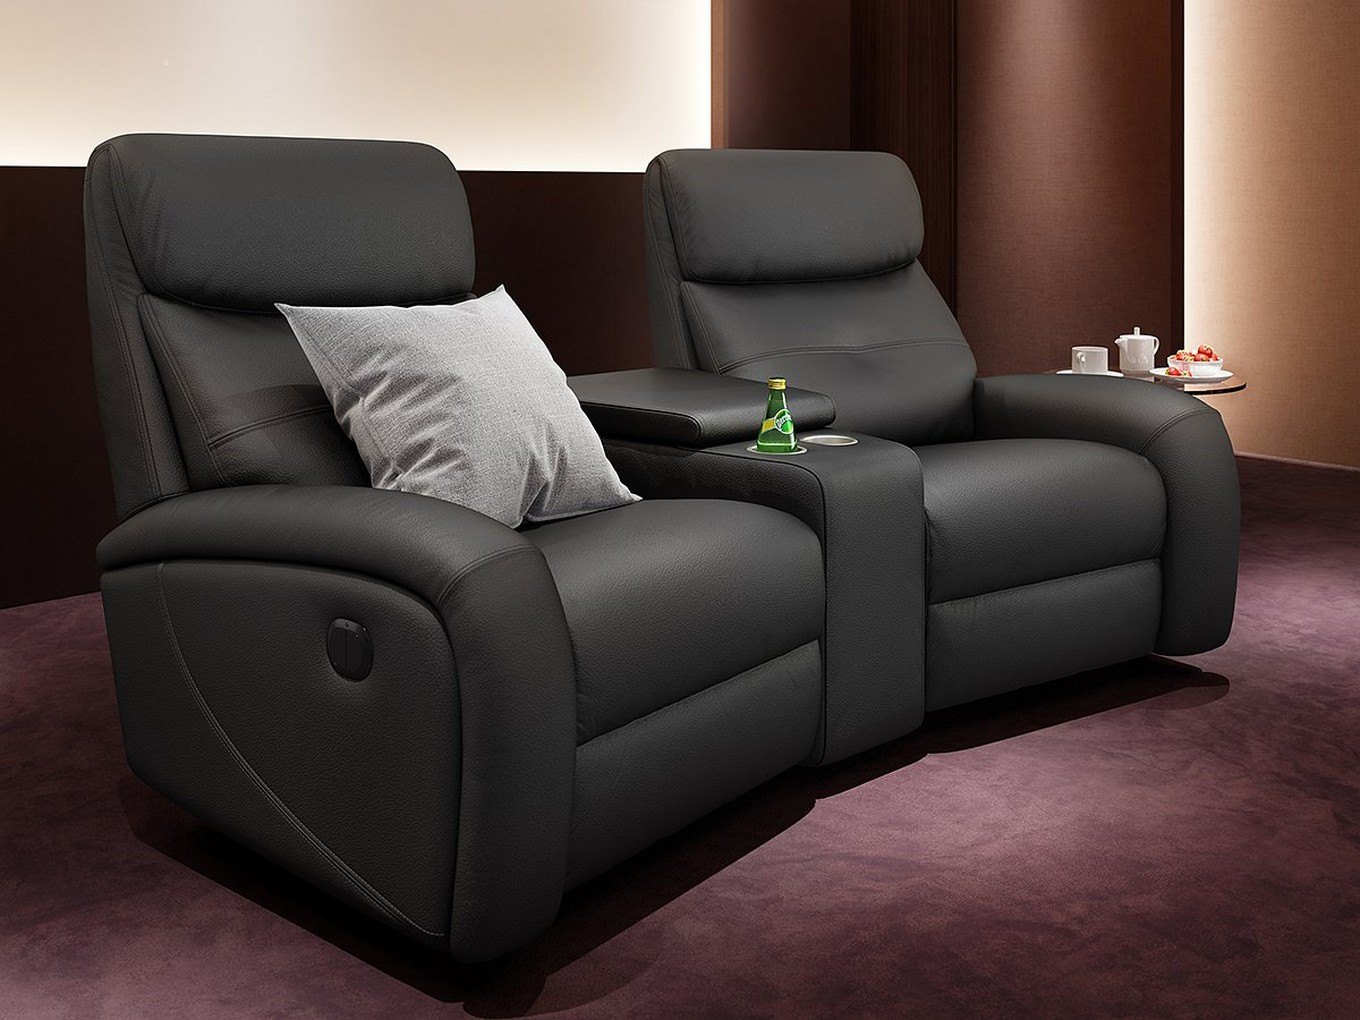 Heim kinosofa leder garnitur relax couch tv sofa kino for Sofa 2 sitzer leder